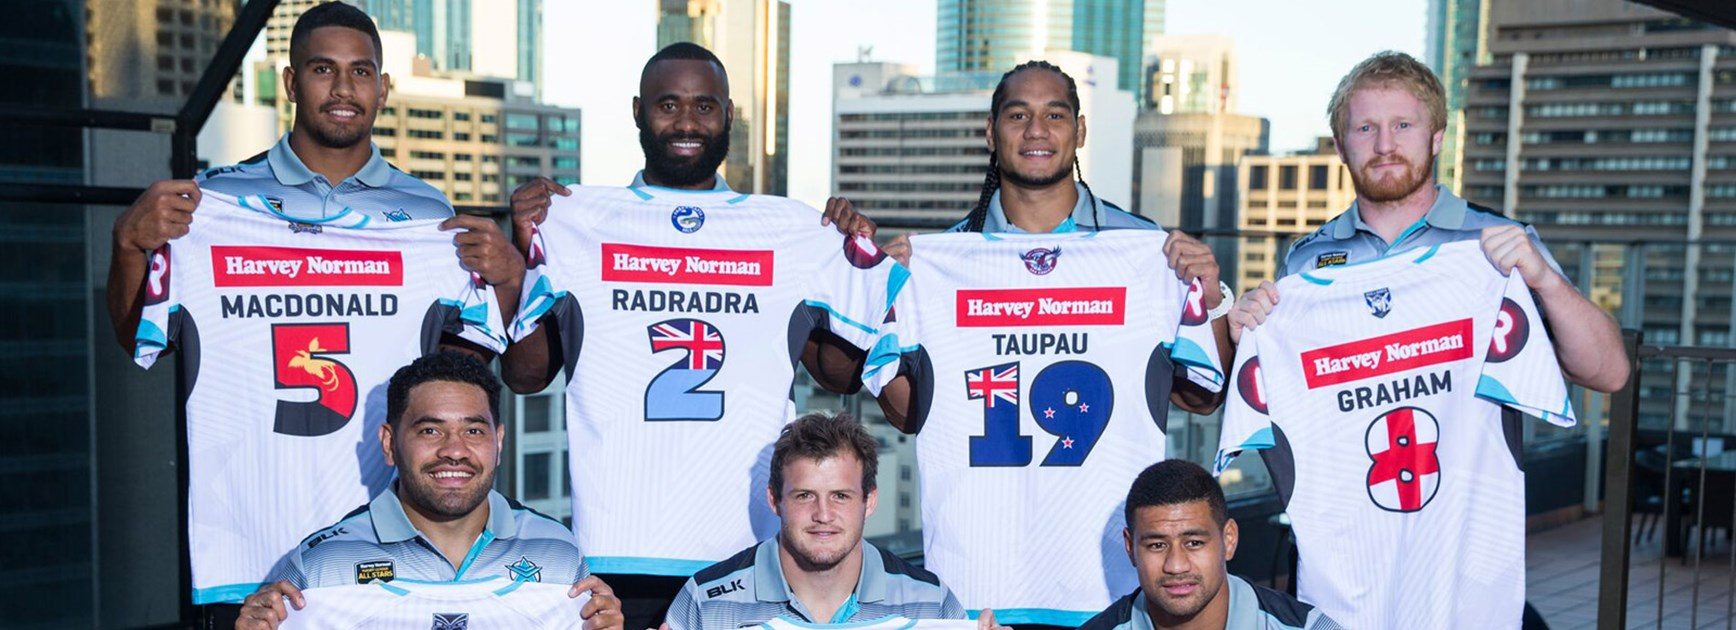 World All Stars representatives Nene Macdonald (PNG), Semi Radradra (Fiji), Martin Taupau (New Zealand), James Graham (England), Konrad Hurrell (Tonga), Josh Morris (Australia) and Matthew Wright (Samoa).